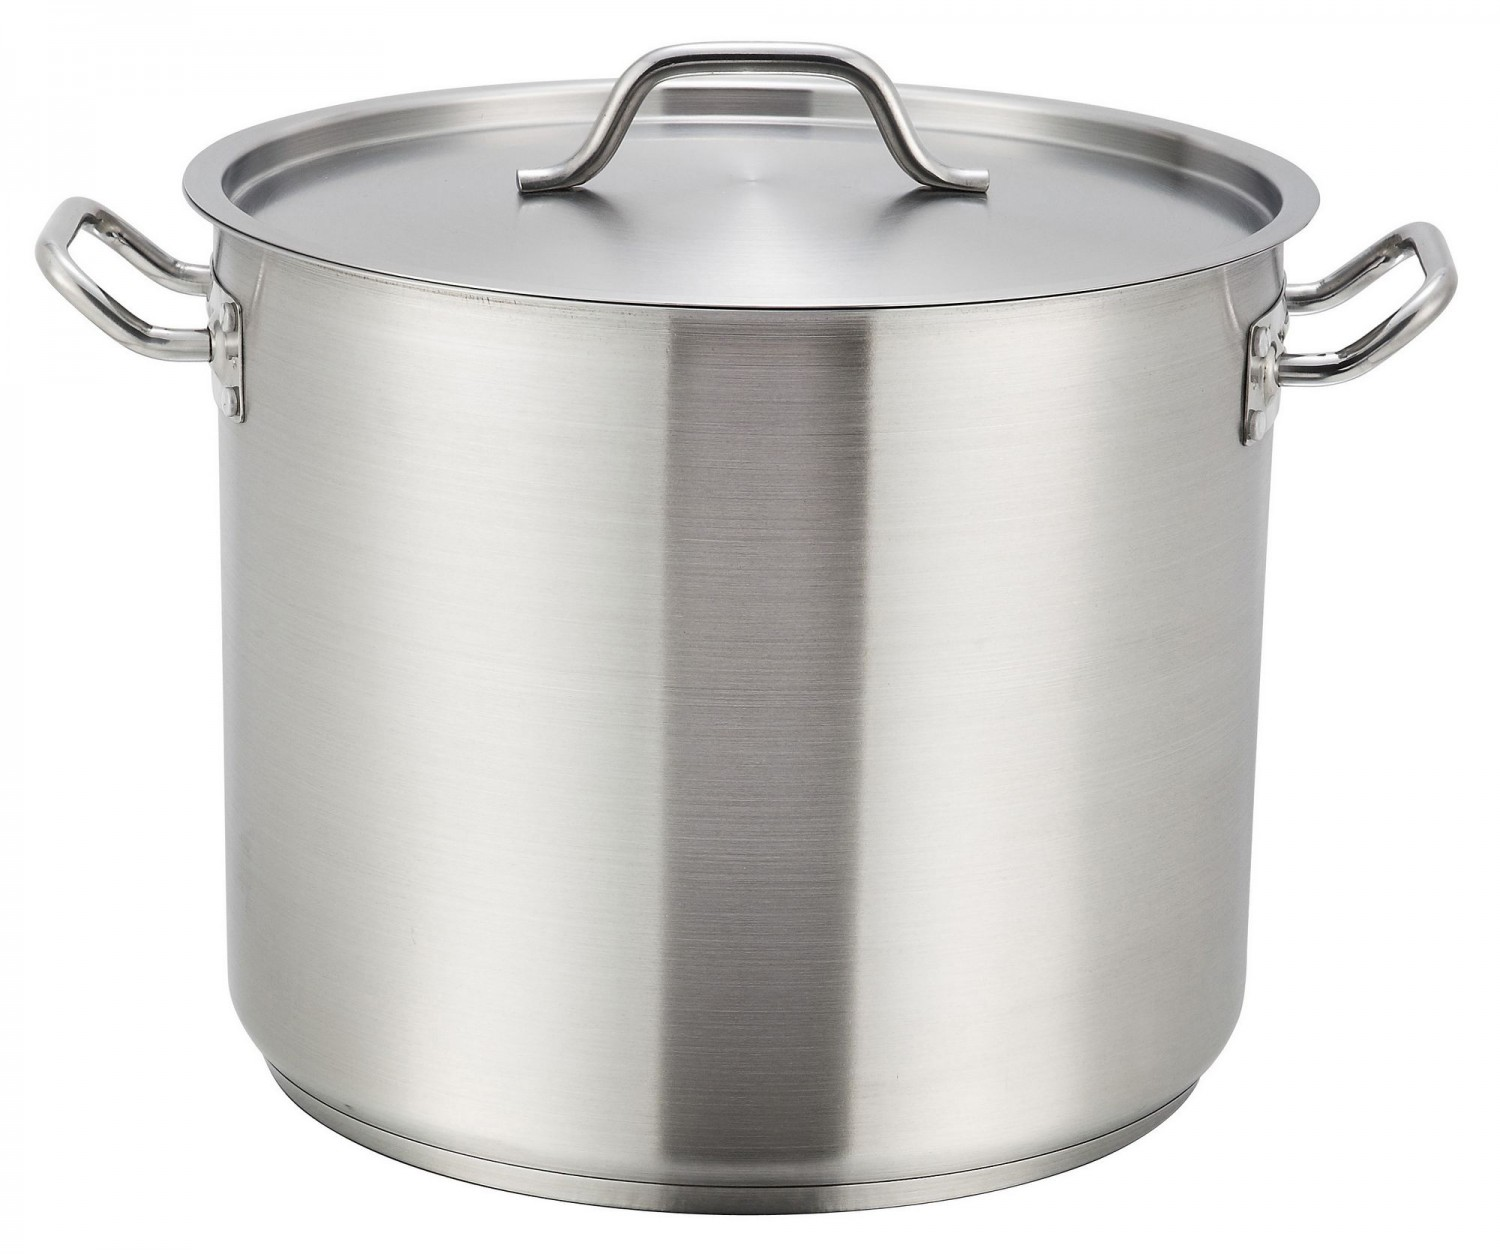 Winco SST-80 Stainless Steel Stock Pot with Cover 80 Qt.